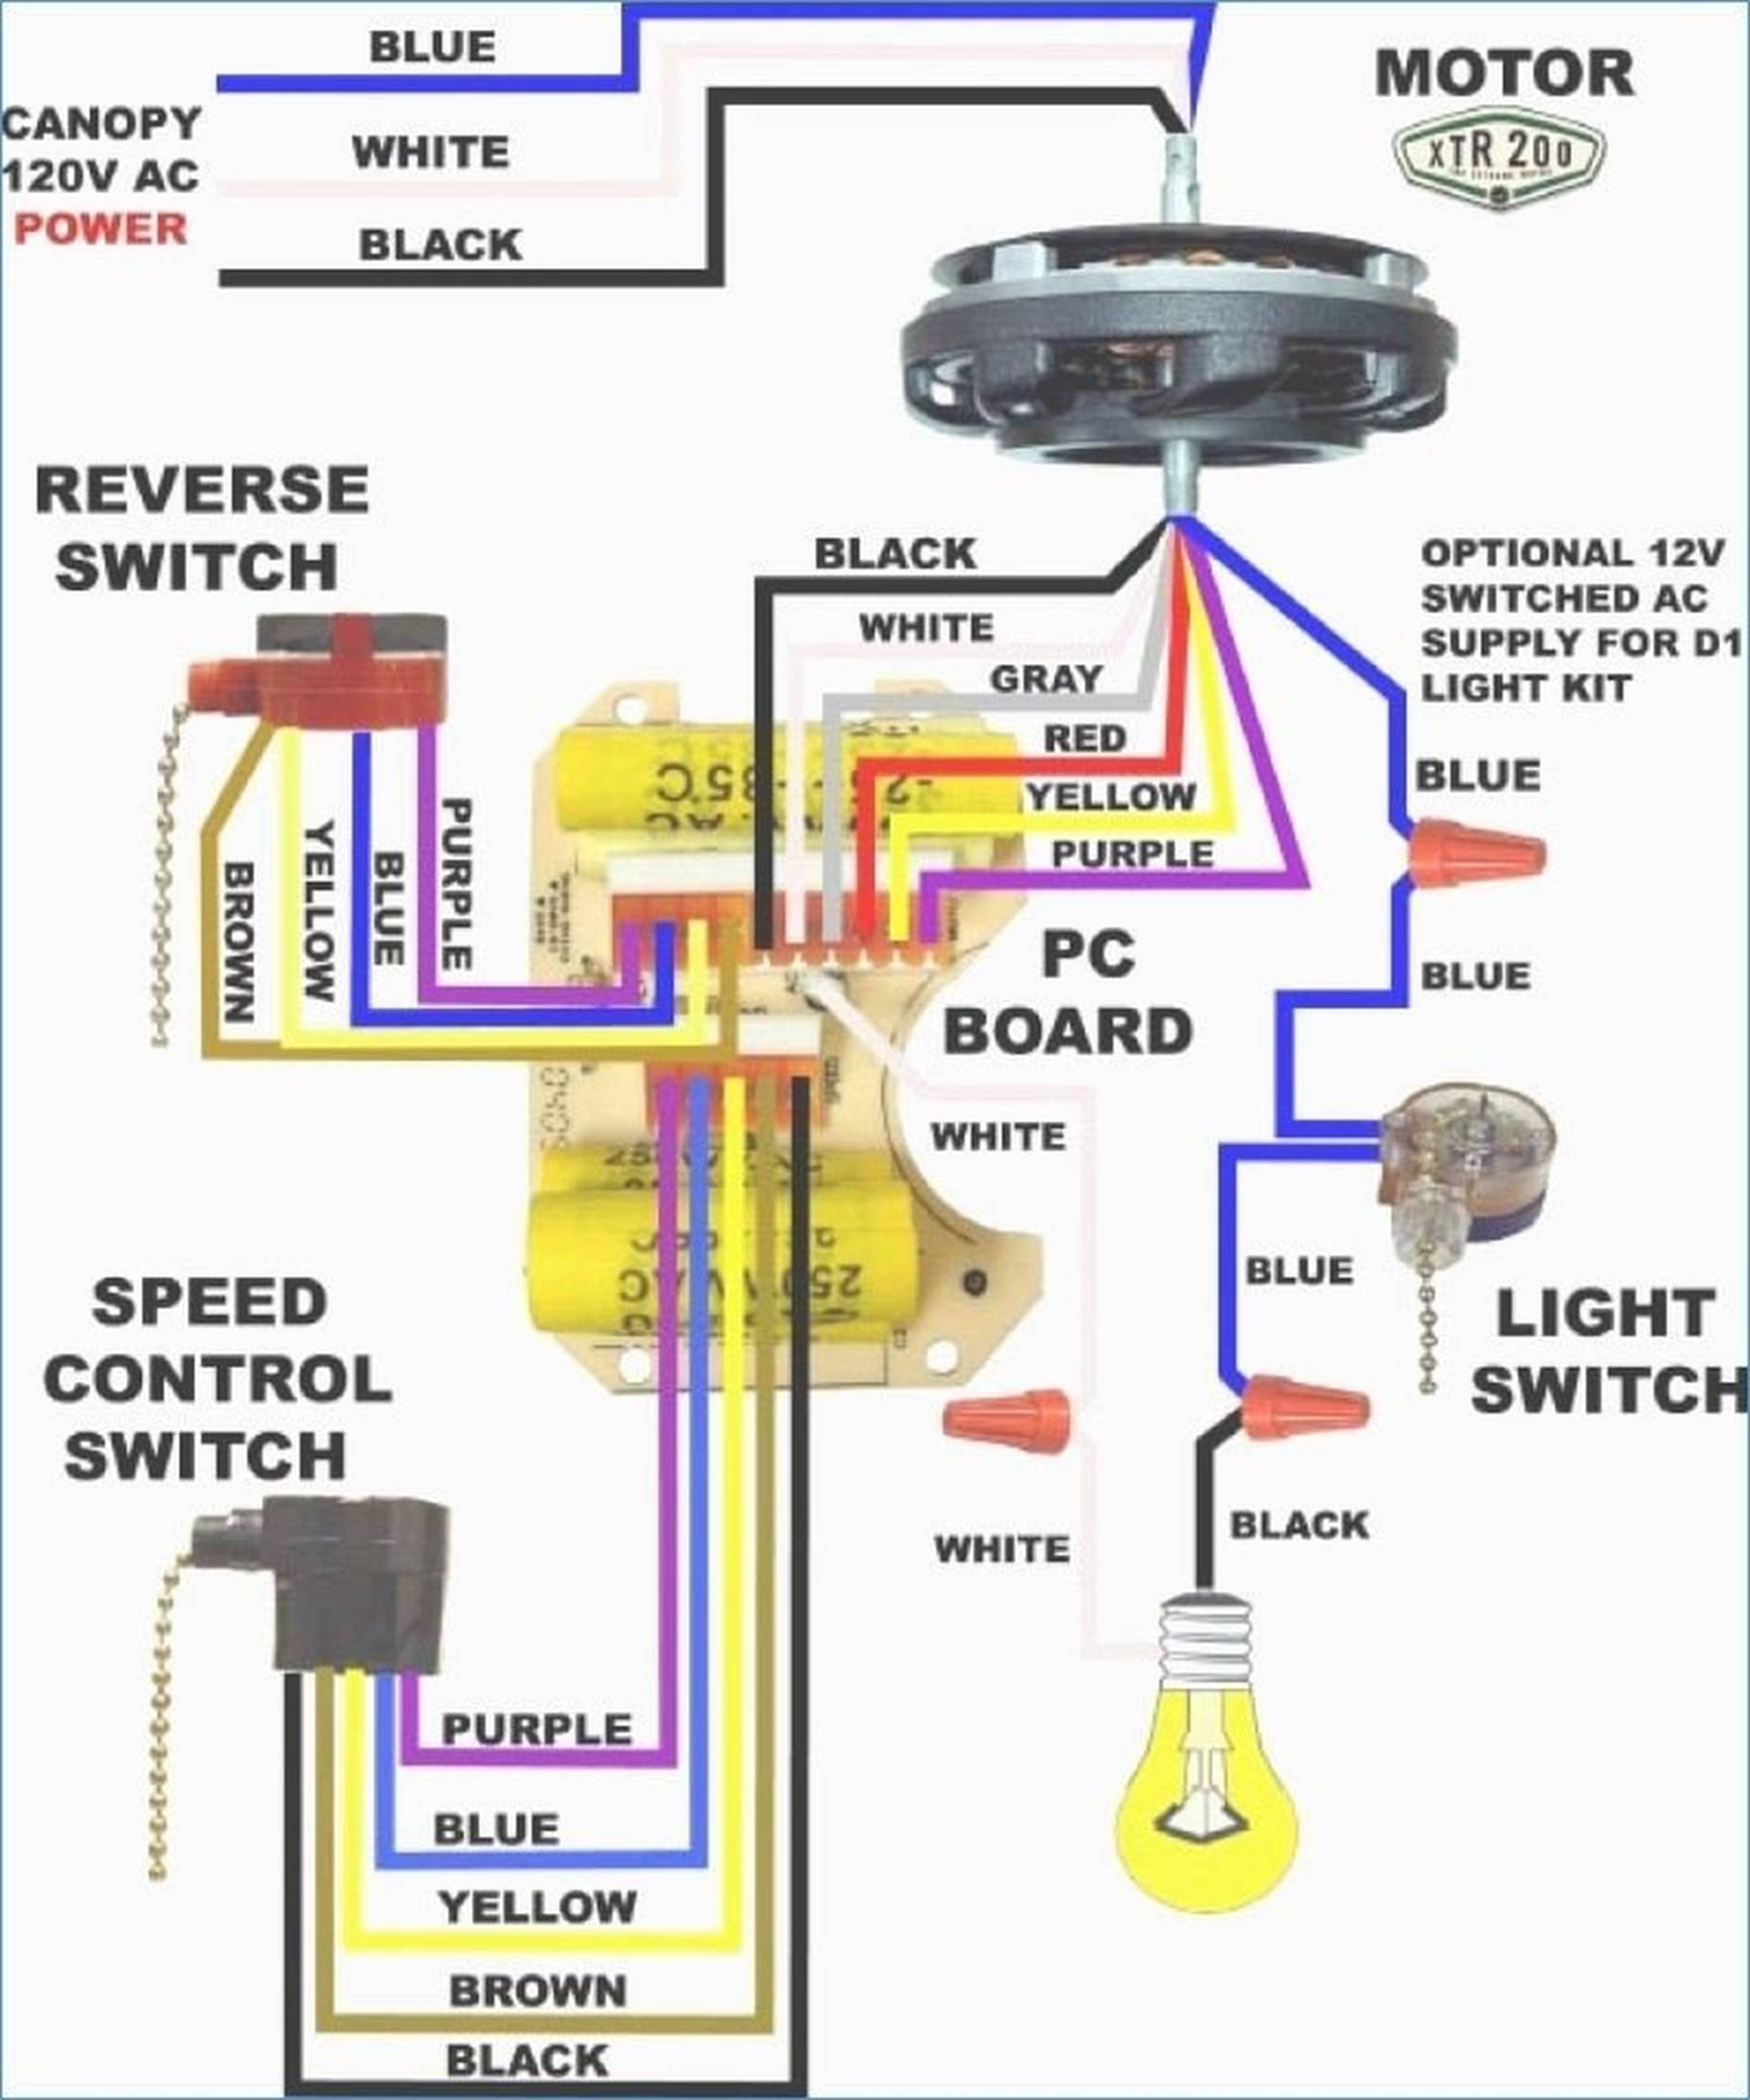 Wiring Diagram For Light Kit To Ceiling Fan - Wiring Diagram Data - Wiring Diagram For Ceiling Fan